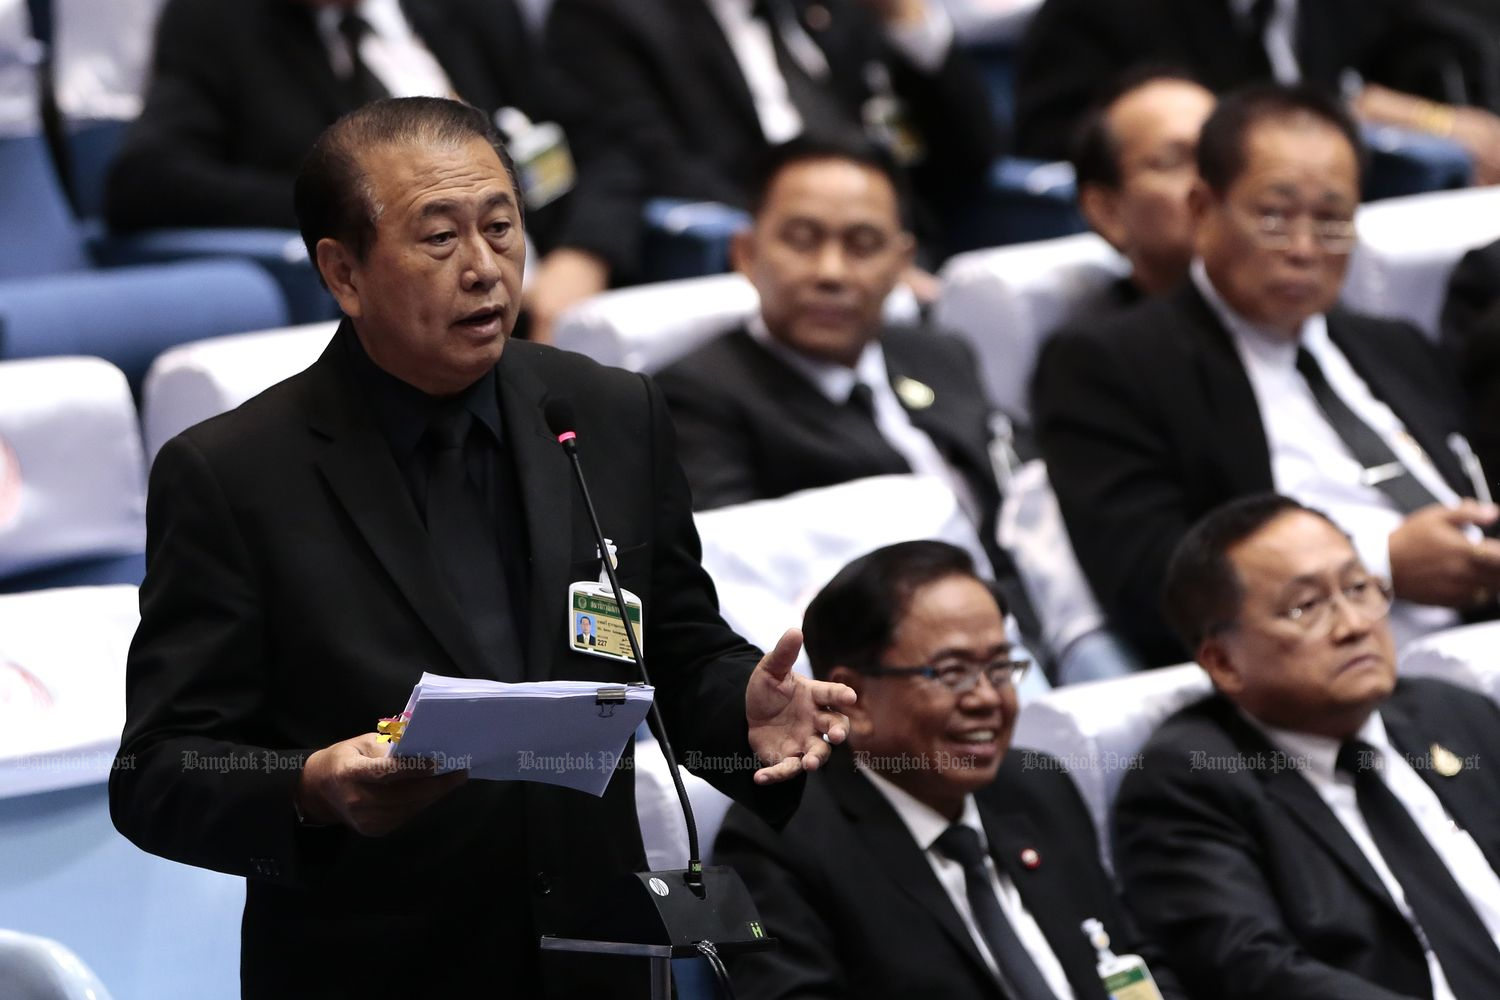 Senator Seri Suwannapanont speaks during a joint sitting to vote on the prime minister on June 5 last year. Every single one of the 250 junta-appointed senators, except their president who abstained by custom, voted for Gen Prayut Chan-o-cha on that day. (Bangkok Post file photo)